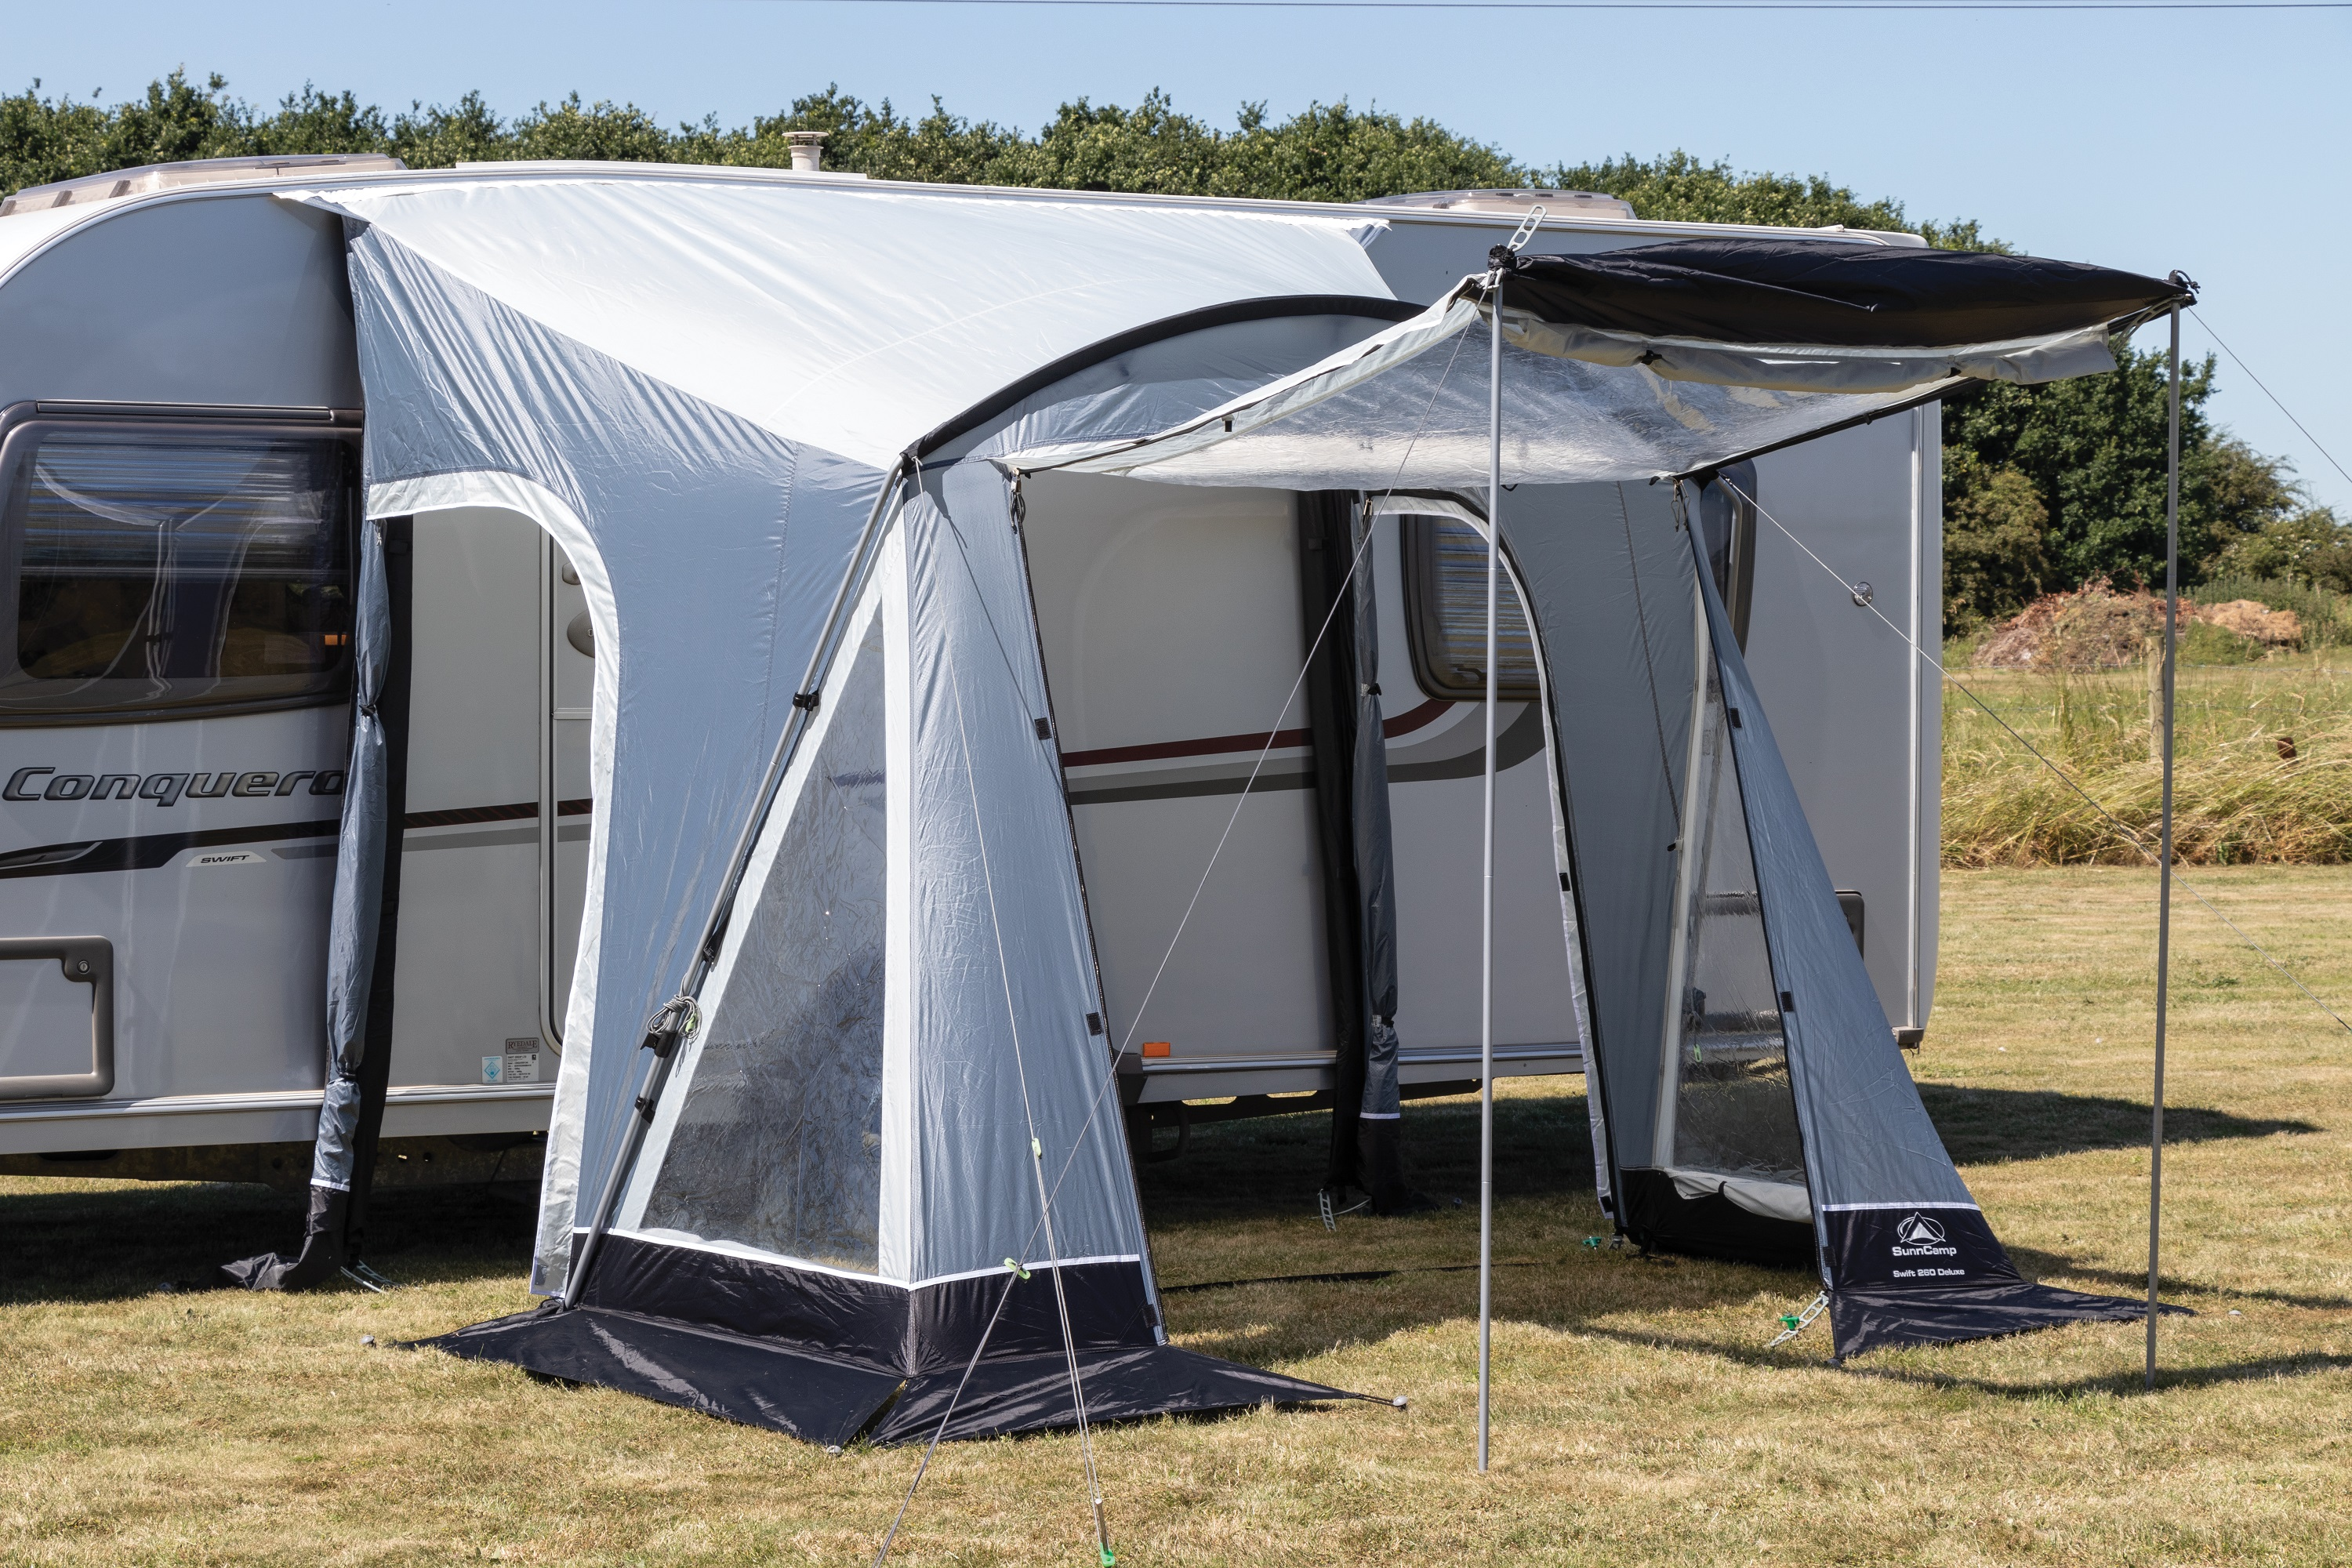 Sunncamp Swift 260 Deluxe Awning 2019 Camping International